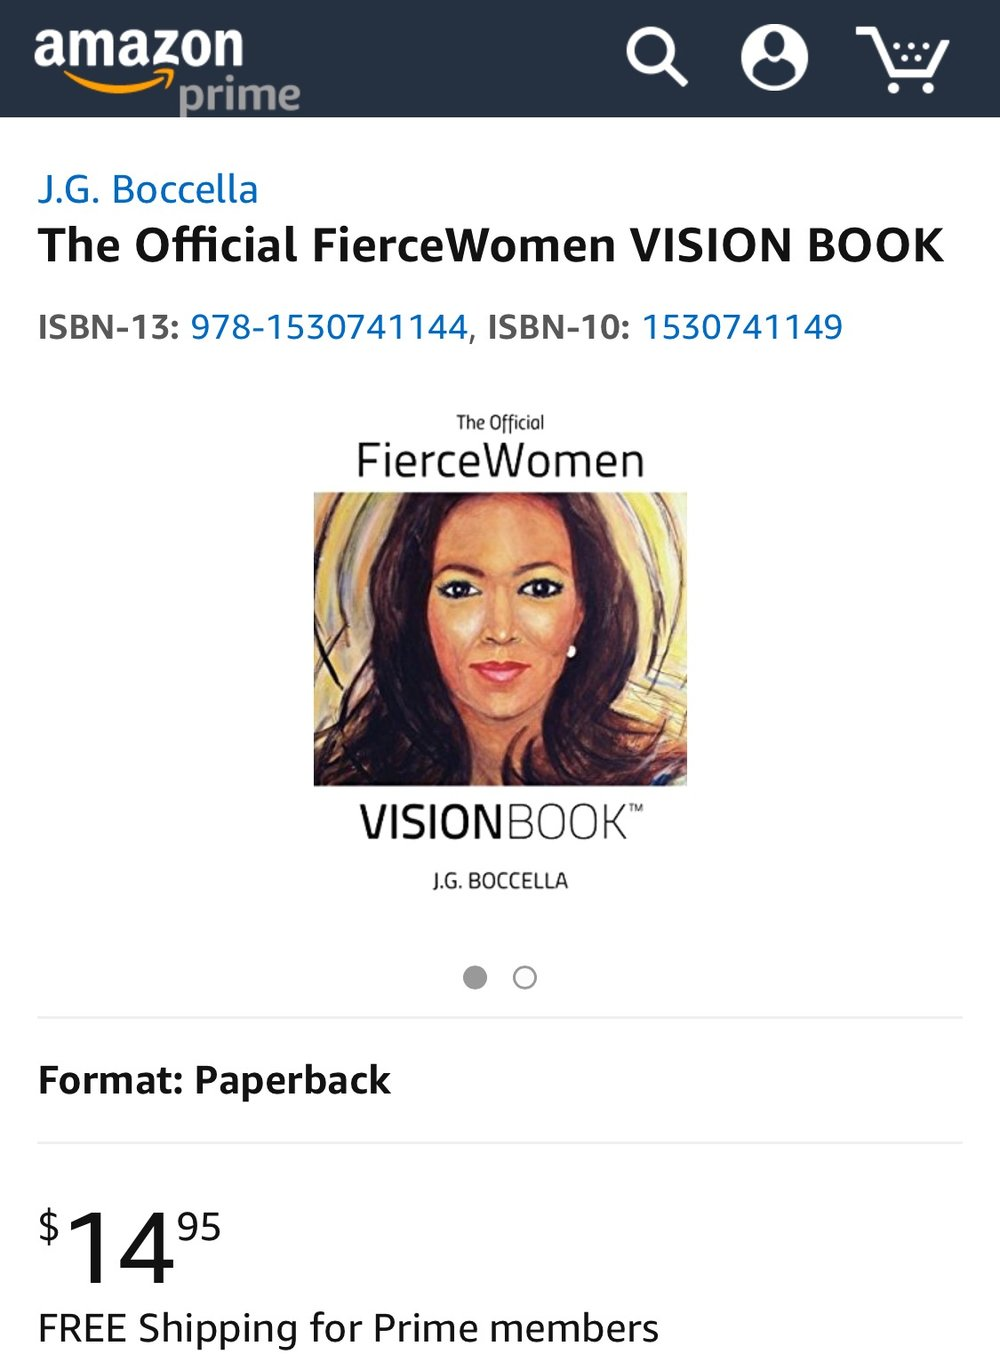 Get the Official FierceWomen VisionBook! -